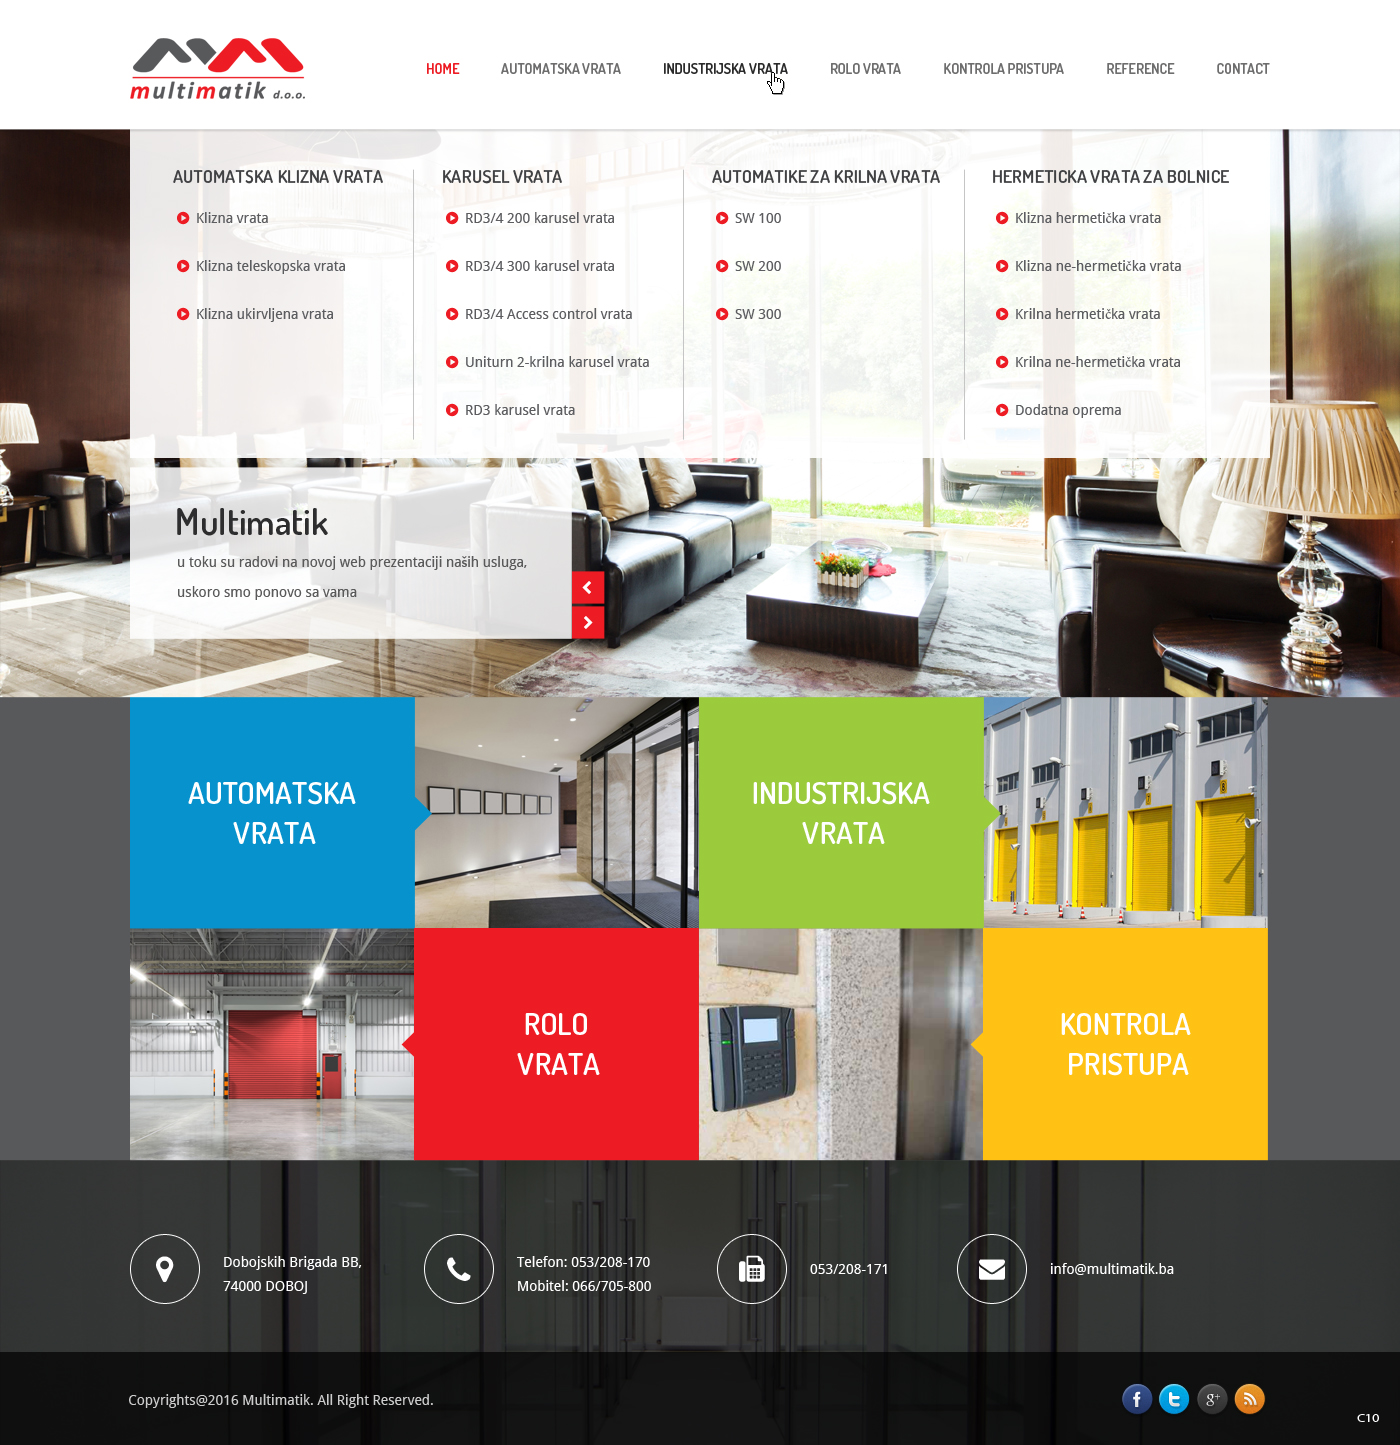 Elegant, Professional, It Company Web Design for Multimatik